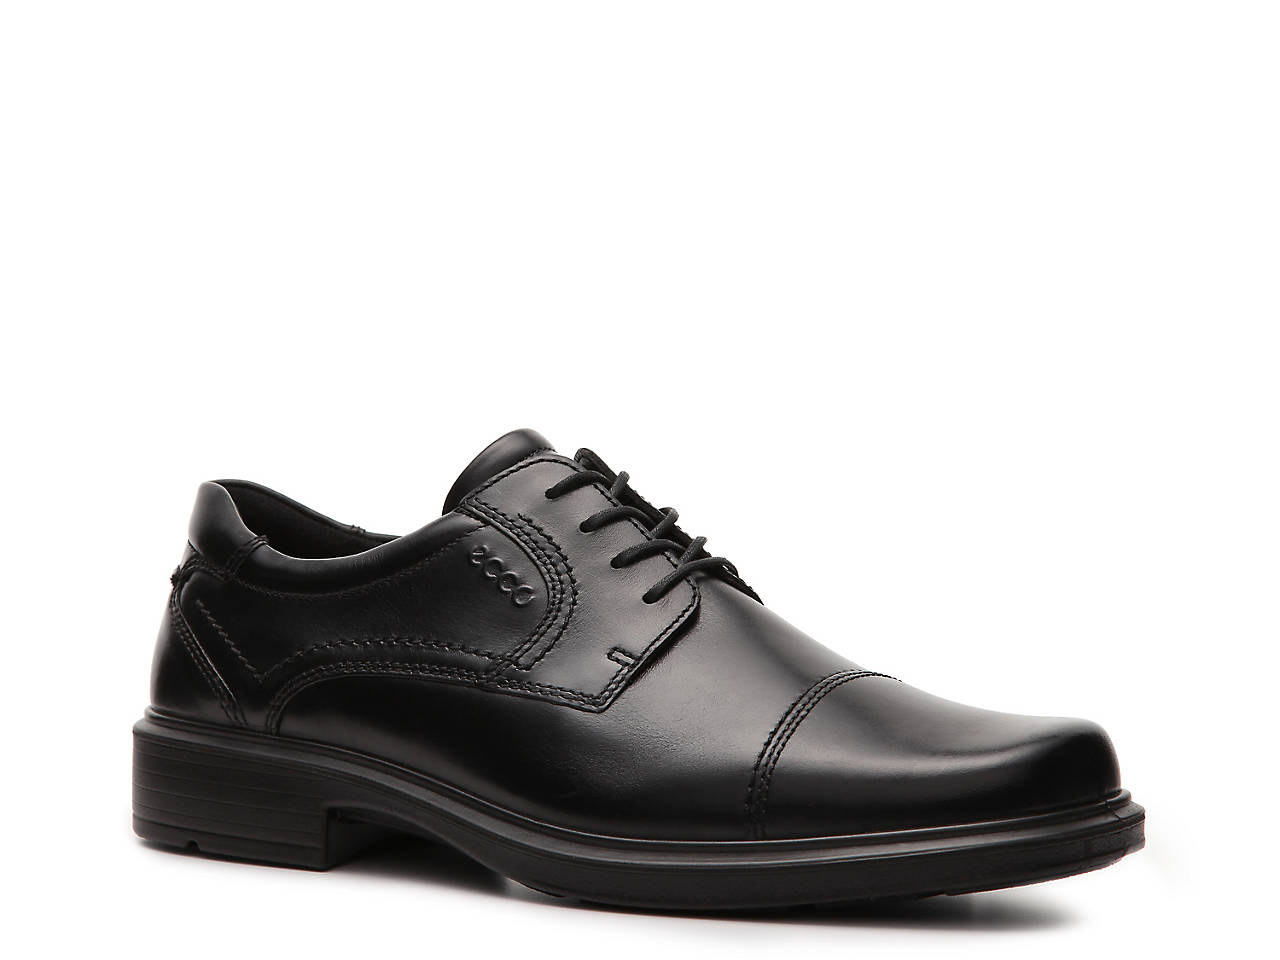 07b4d50ab495 ECCO Helsinki Cap Toe Oxford Men s Shoes